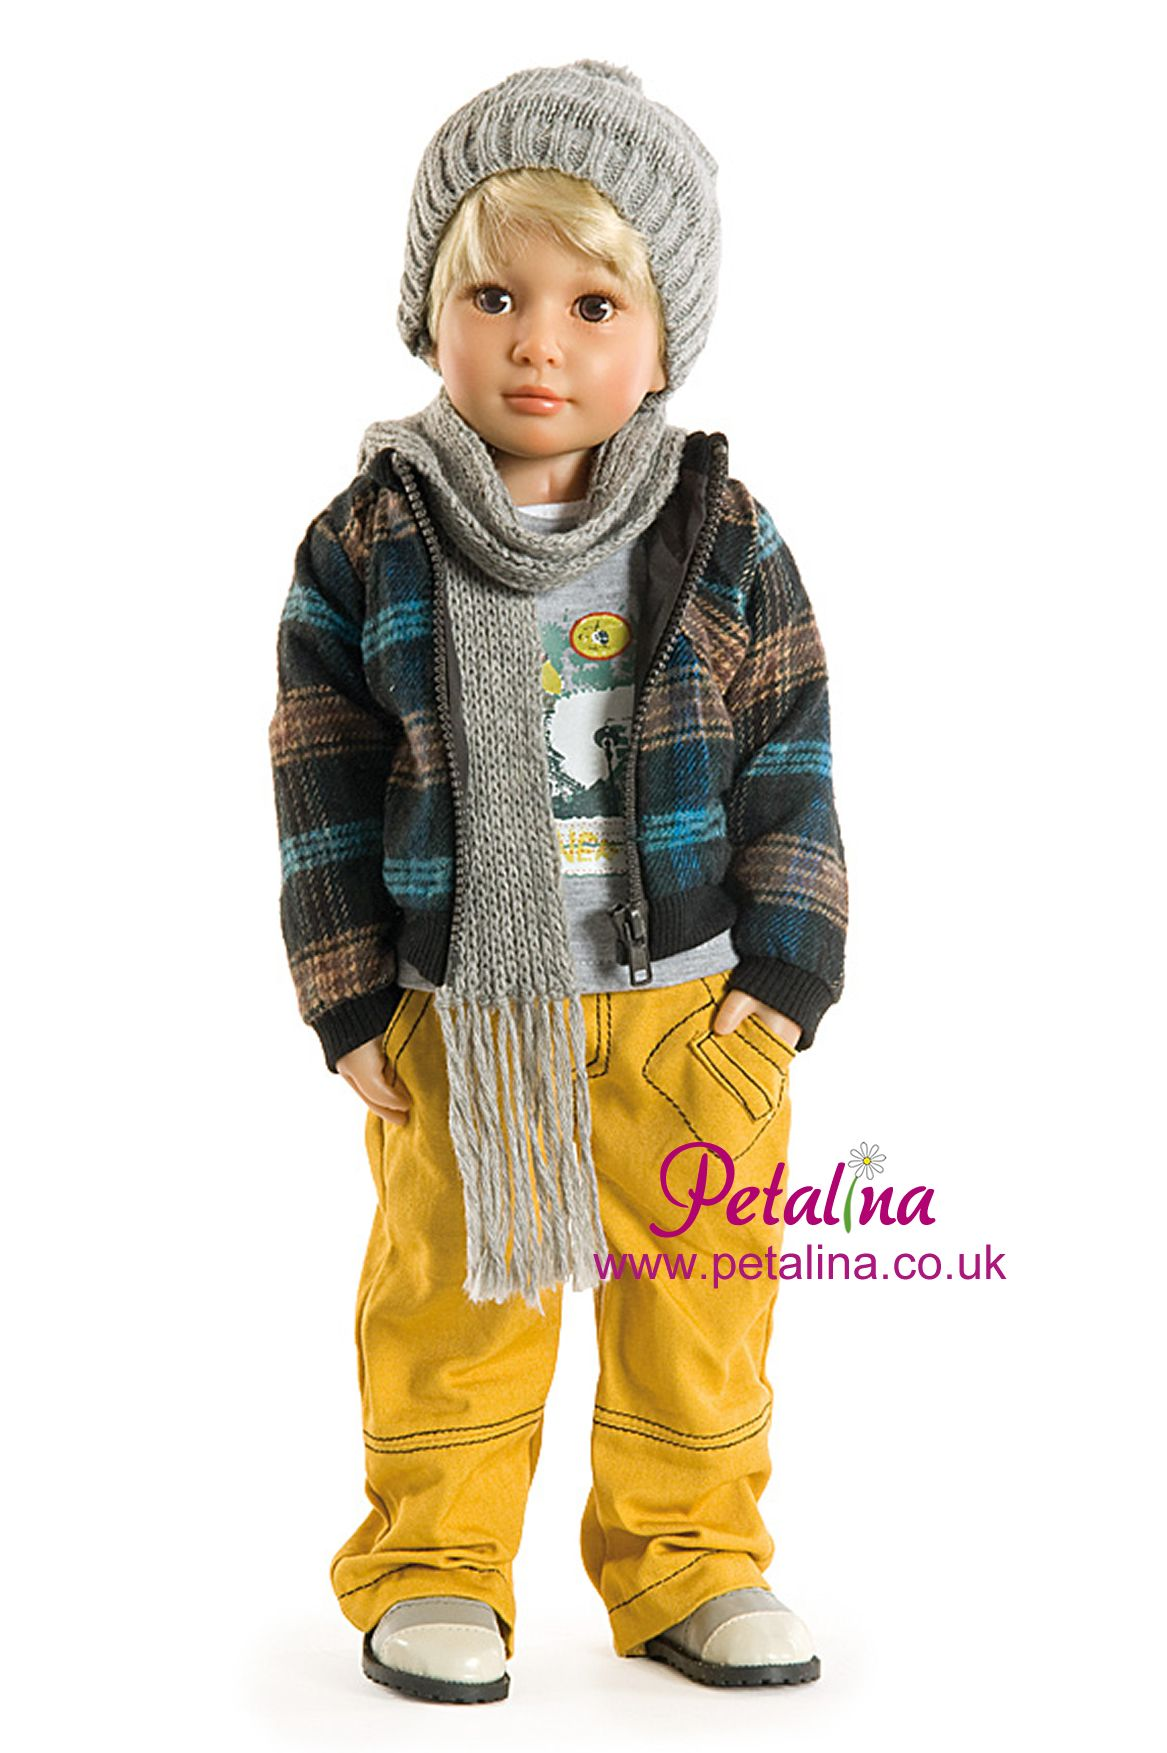 Jakob is from the very first collection of Kidz n Cats dolls and